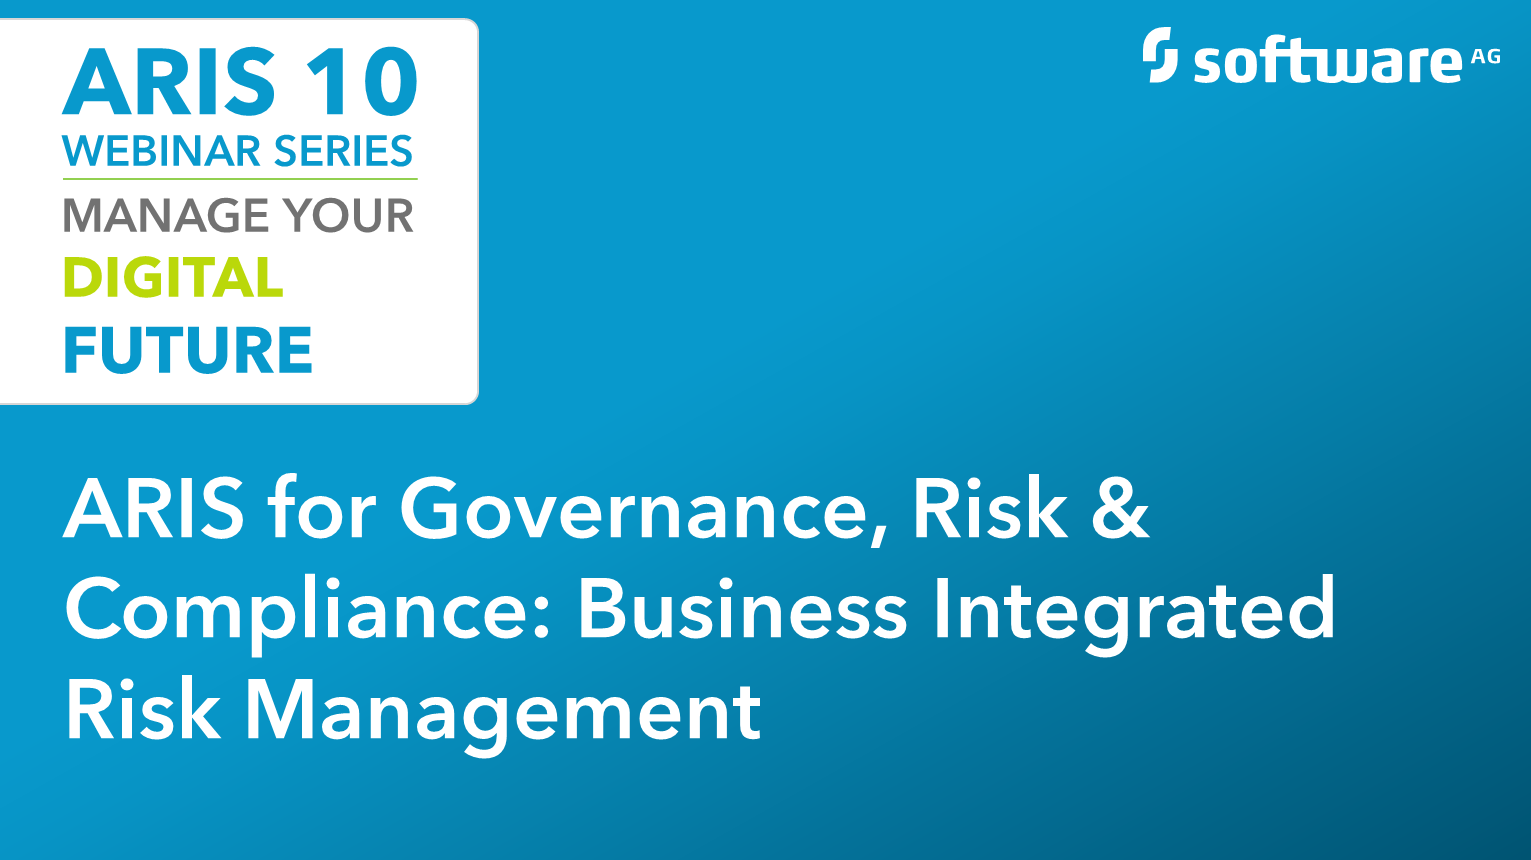 ARIS for Governance, Risk & Compliance: Business Integrated